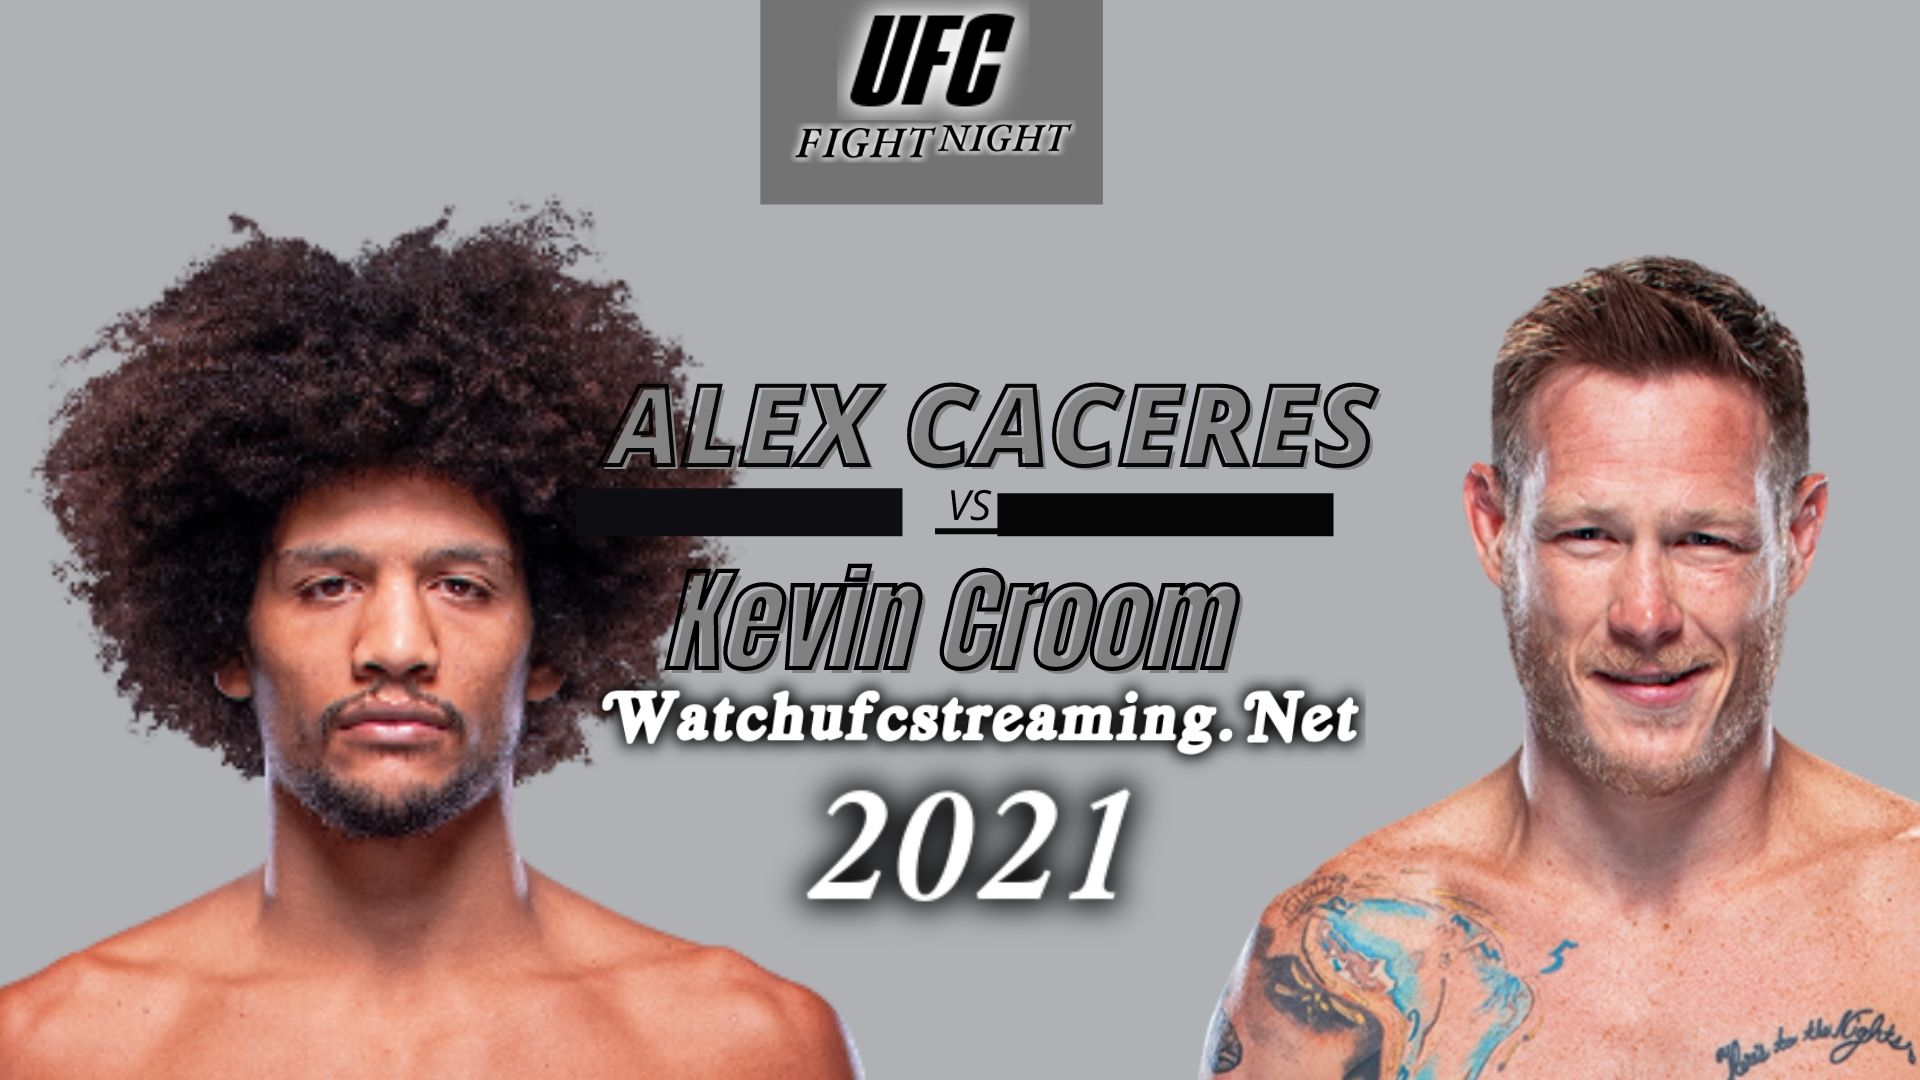 UFC - Alex Caceres Vs Kevin Croom Highlights 2021 | Featherweight